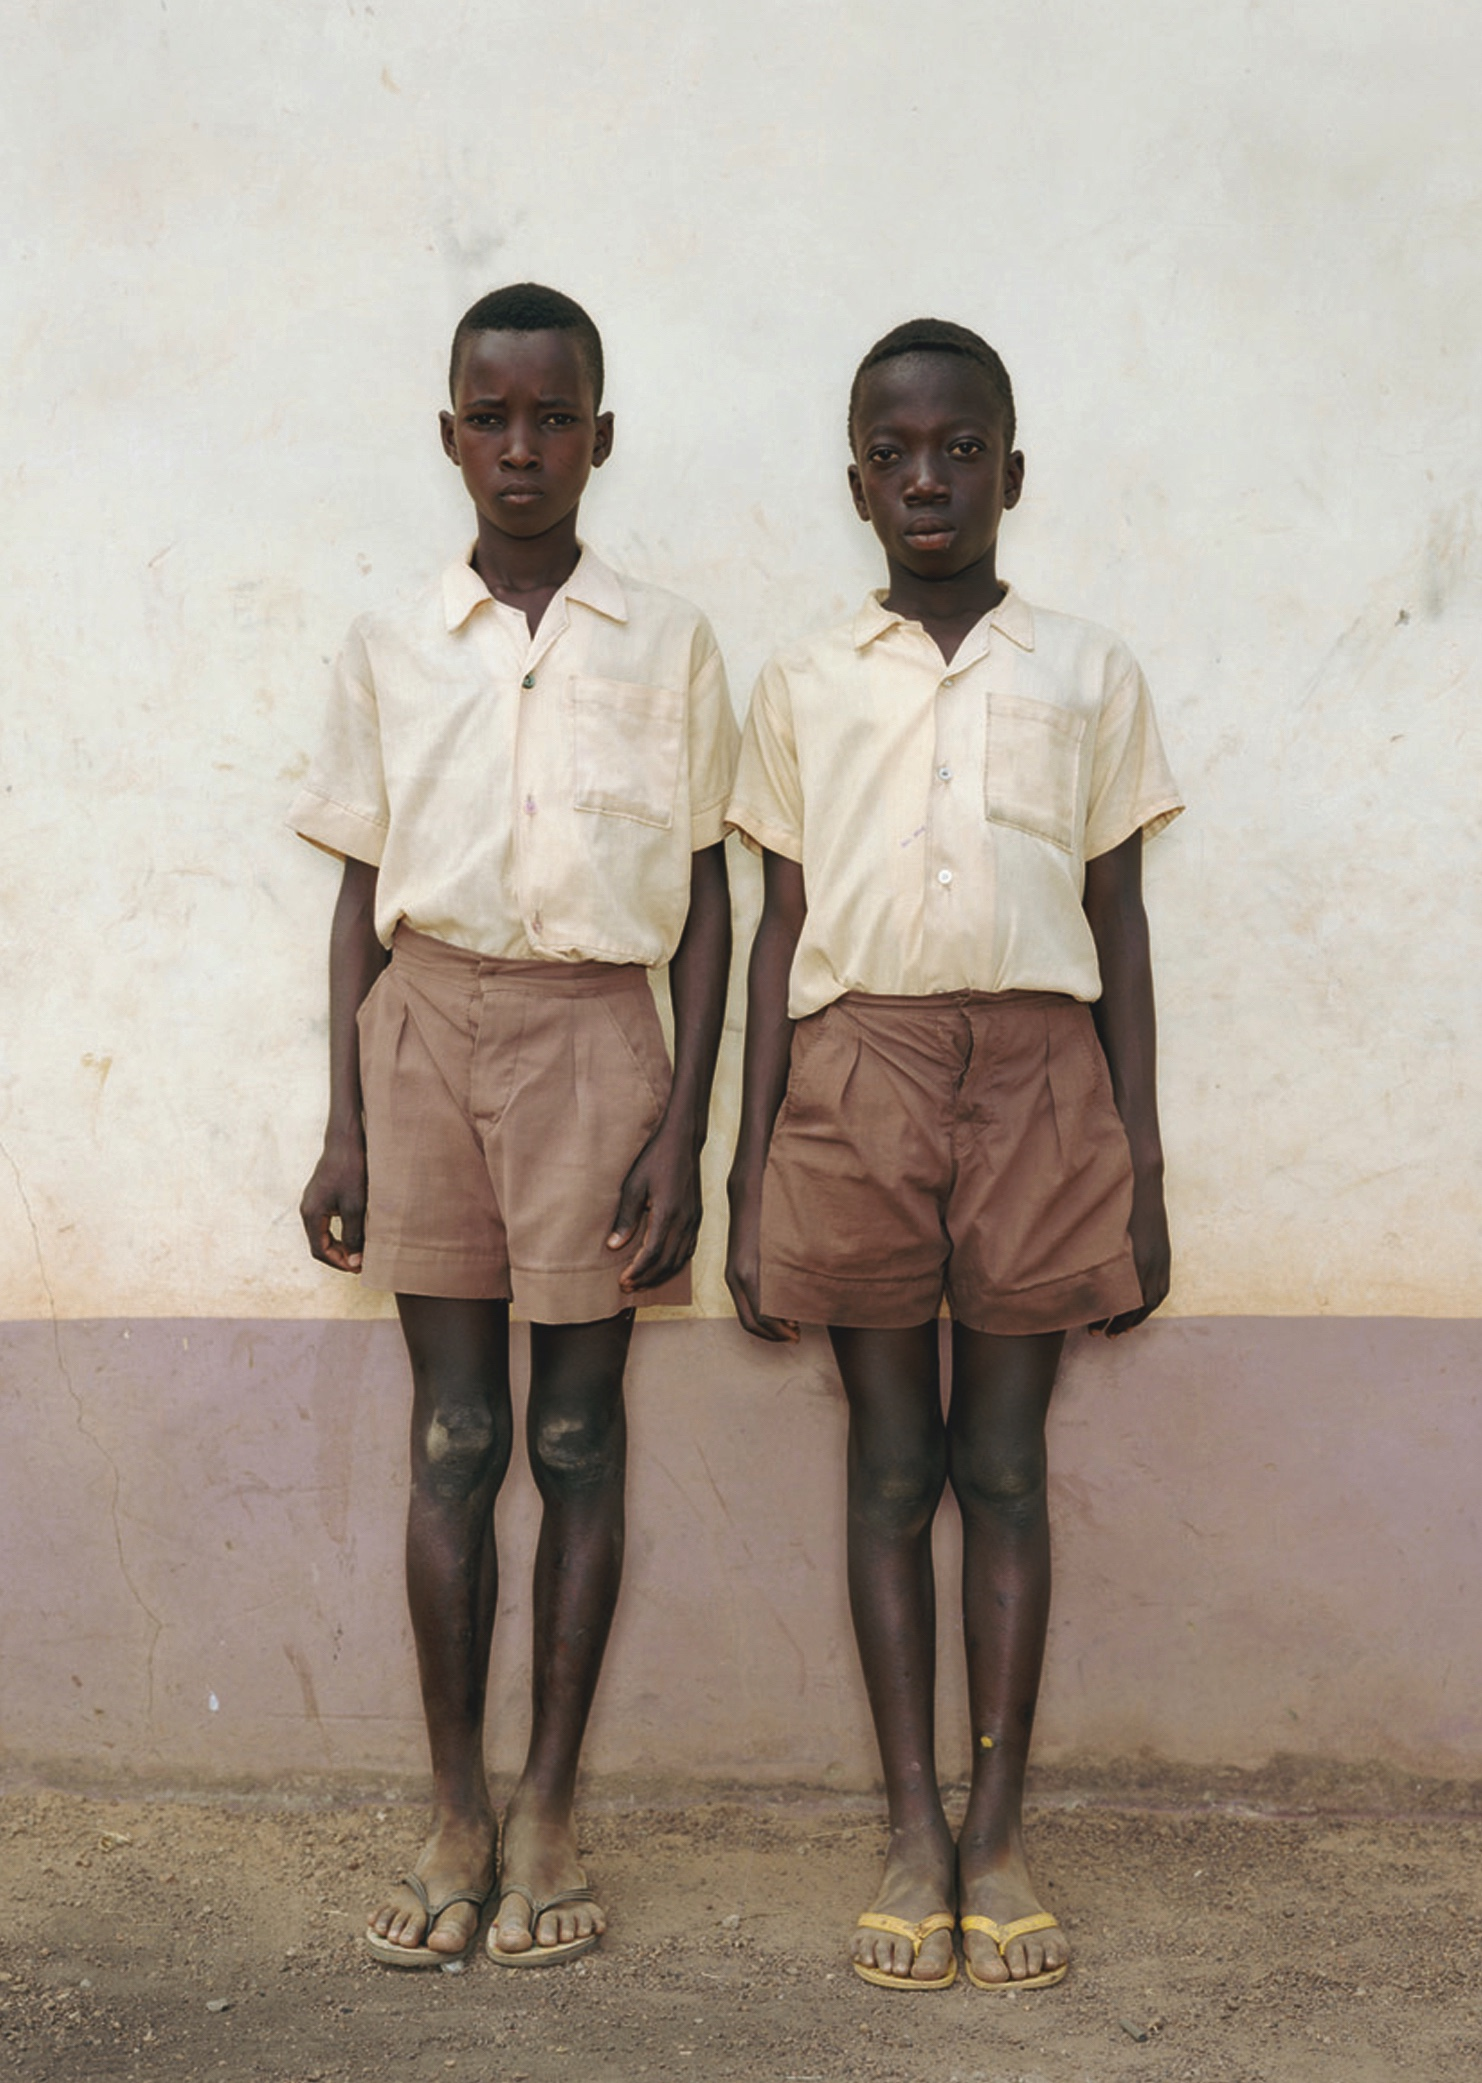 Rineke Dijkstra: Tamale, Ghana, 5 March, 1996, Courtesy Marian Goodman Gallery, Paris and Galerie Max Hetzler, Berlin.